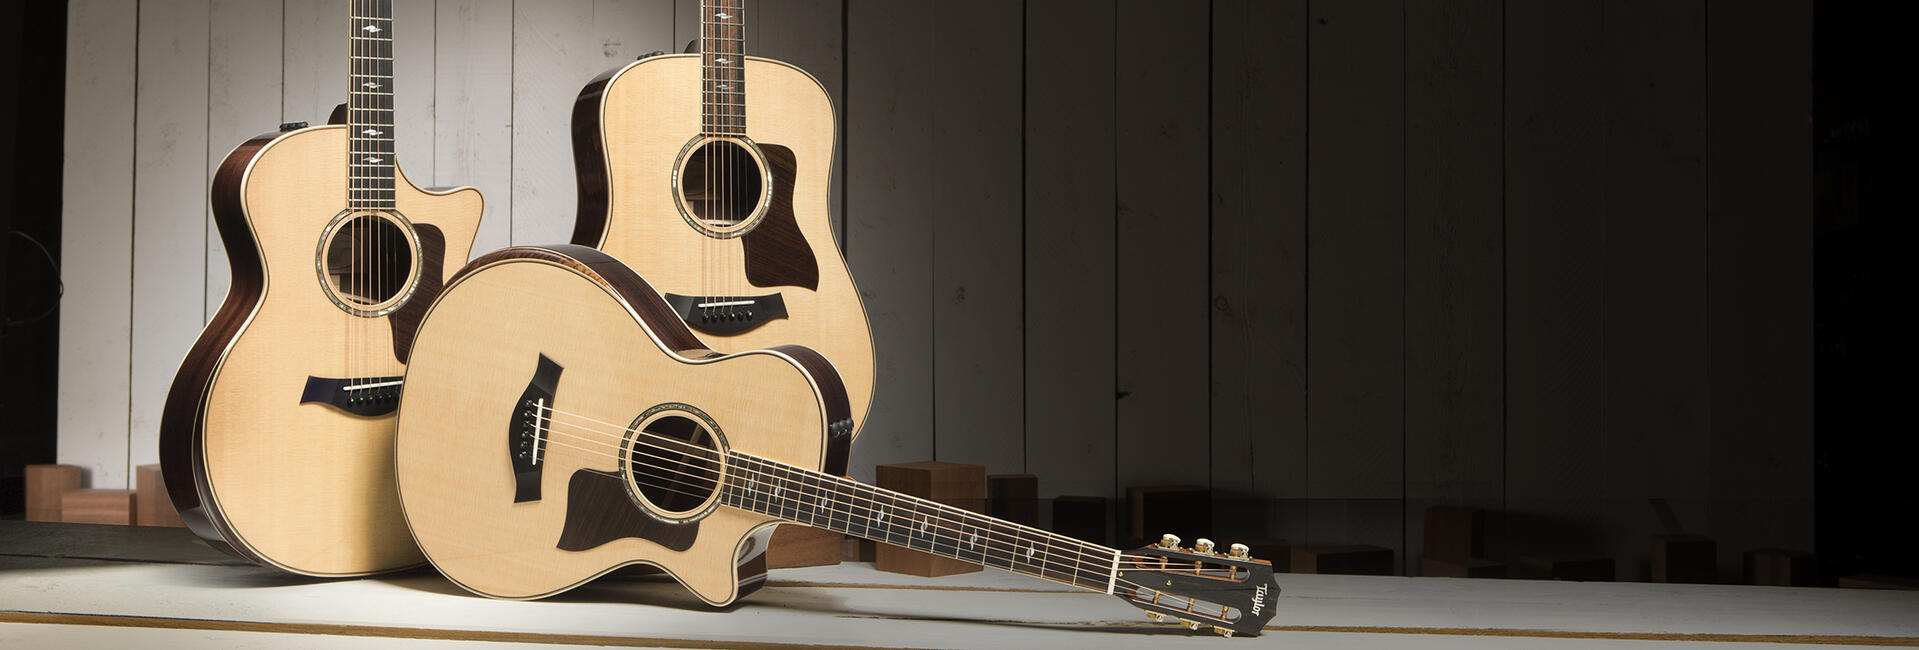 800 deluxe series taylor guitars for Youtube certified mechanic shirt